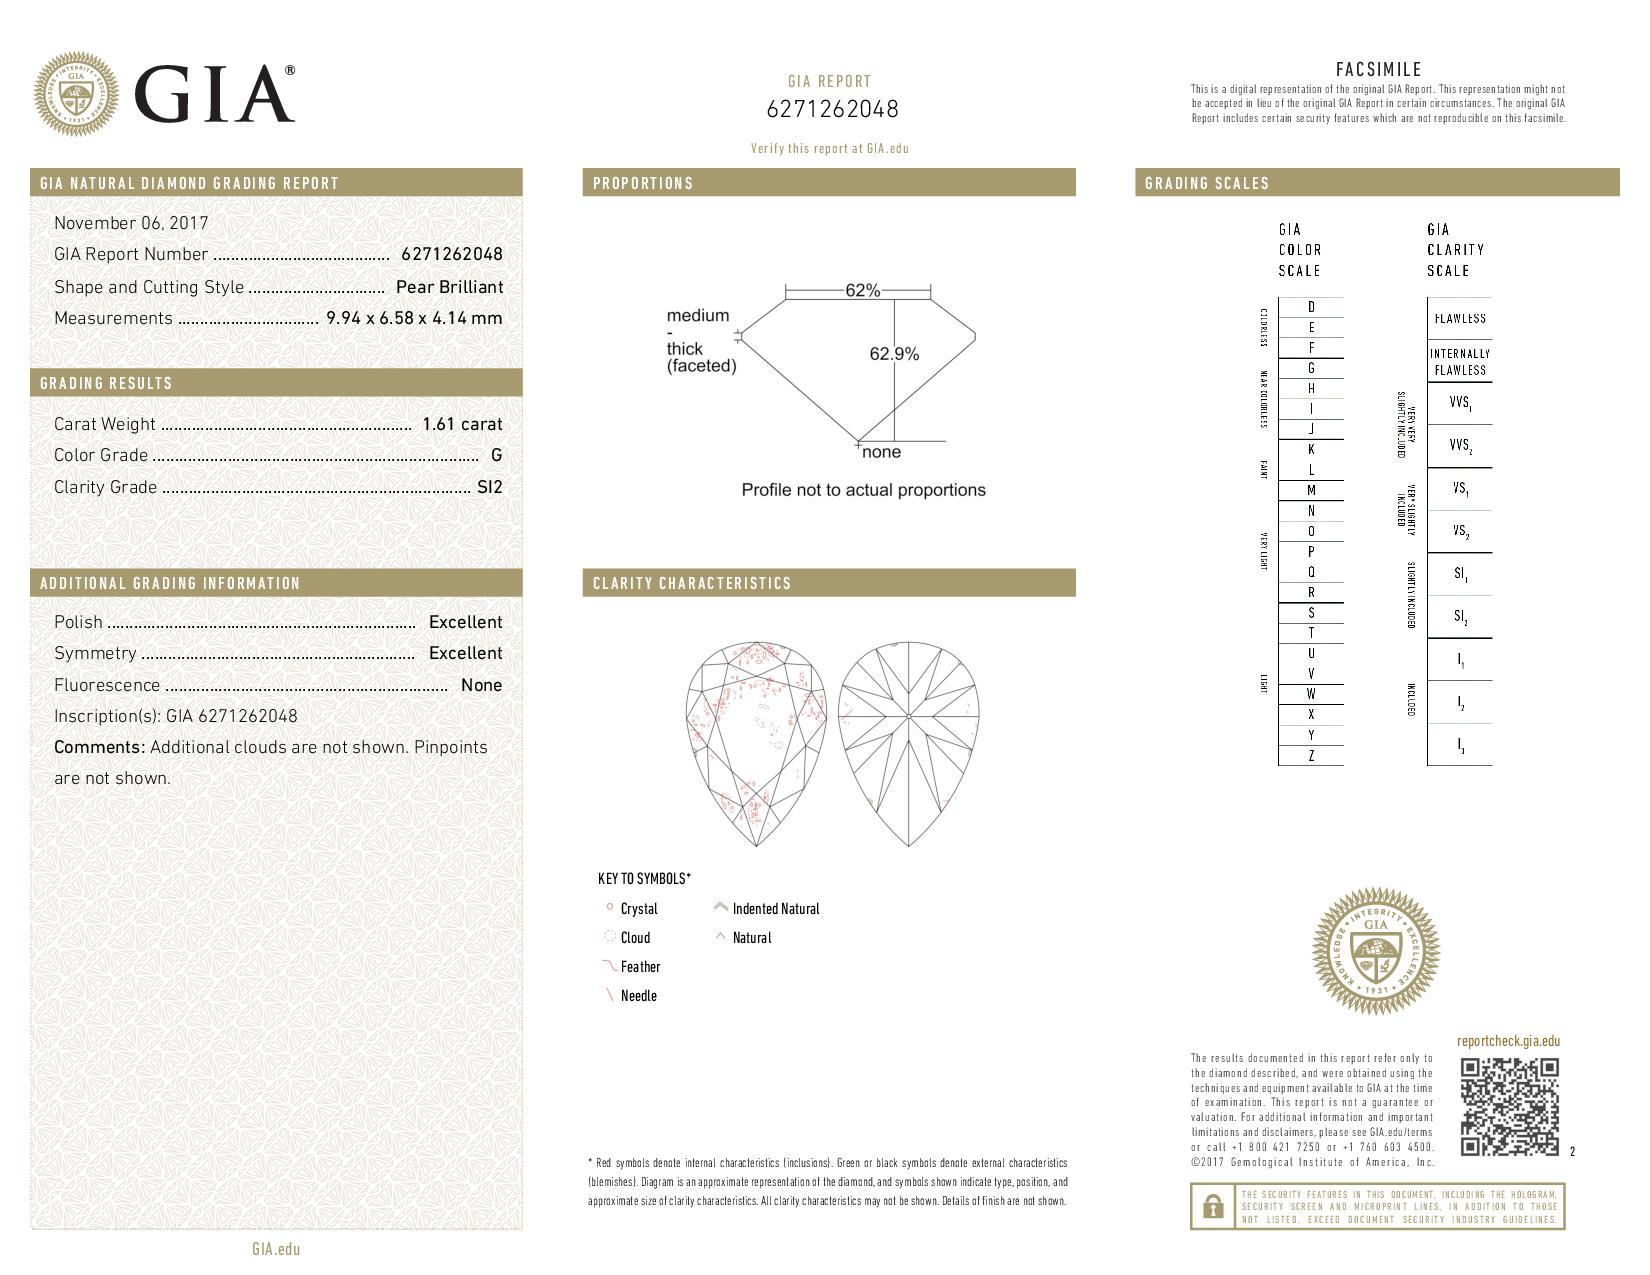 This is a 1.61 carat pear shape, G color, SI2 clarity natural diamond accompanied by a GIA grading report.